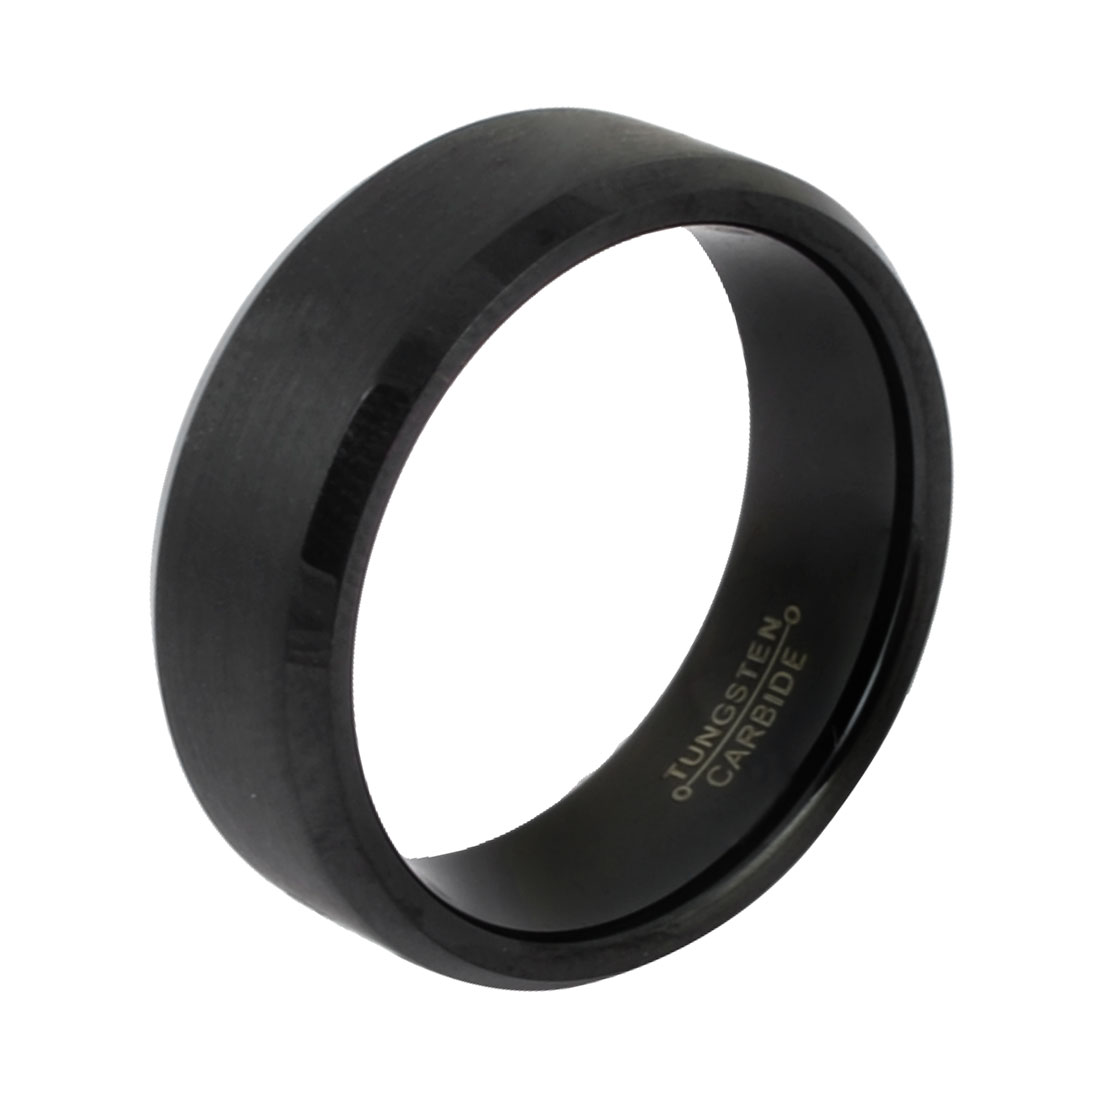 Men 69mm Circumference Tungsten Steel Band Ring Finger Ornament Black Us 12 3/4( 13#)